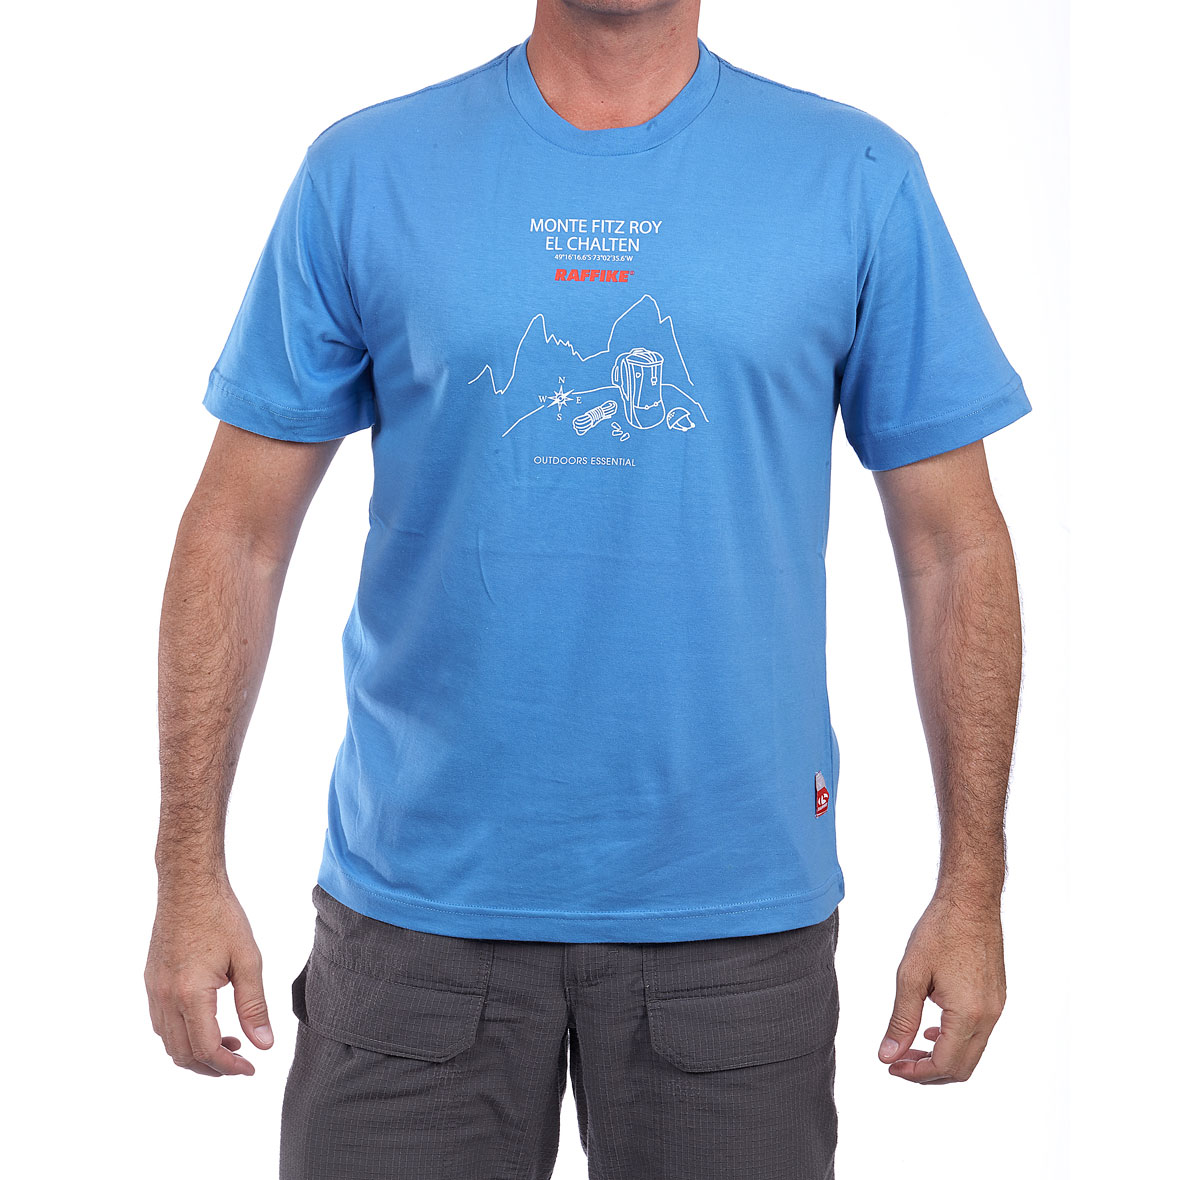 MG 8758 5RE20151710M Adventure T Shirt Fitz Roy Azulino - Adventure T-Shirts